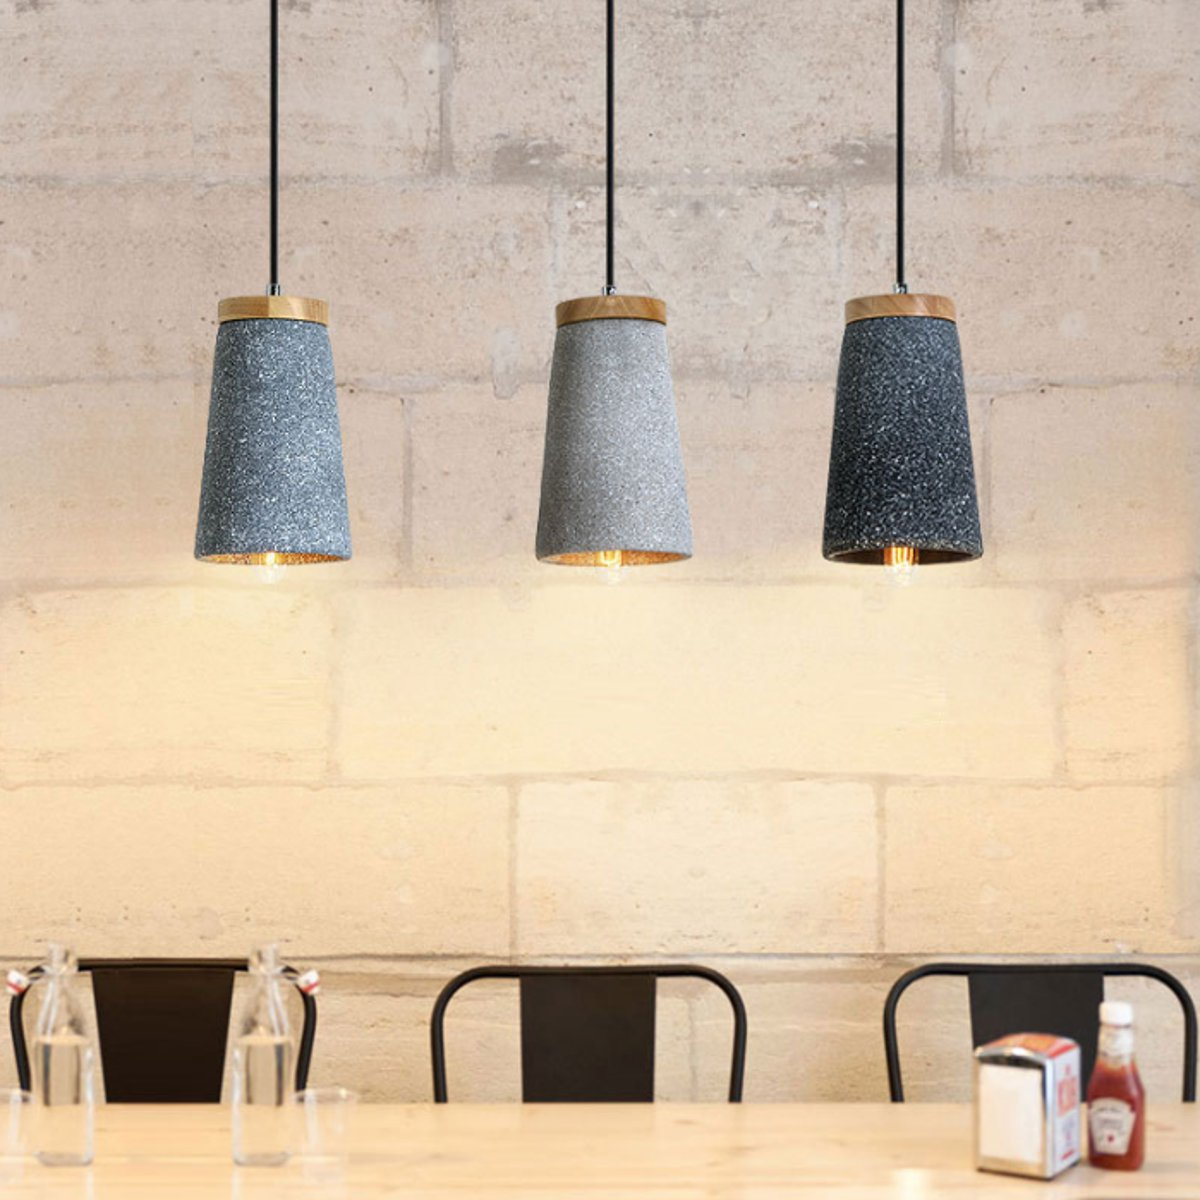 E27 Holder Concrete Pendant Light Kitchen Bar Bedroom Ceiling Lamp Home Decoration Indoor Lighting 2 ColorsE27 Holder Concrete Pendant Light Kitchen Bar Bedroom Ceiling Lamp Home Decoration Indoor Lighting 2 Colors